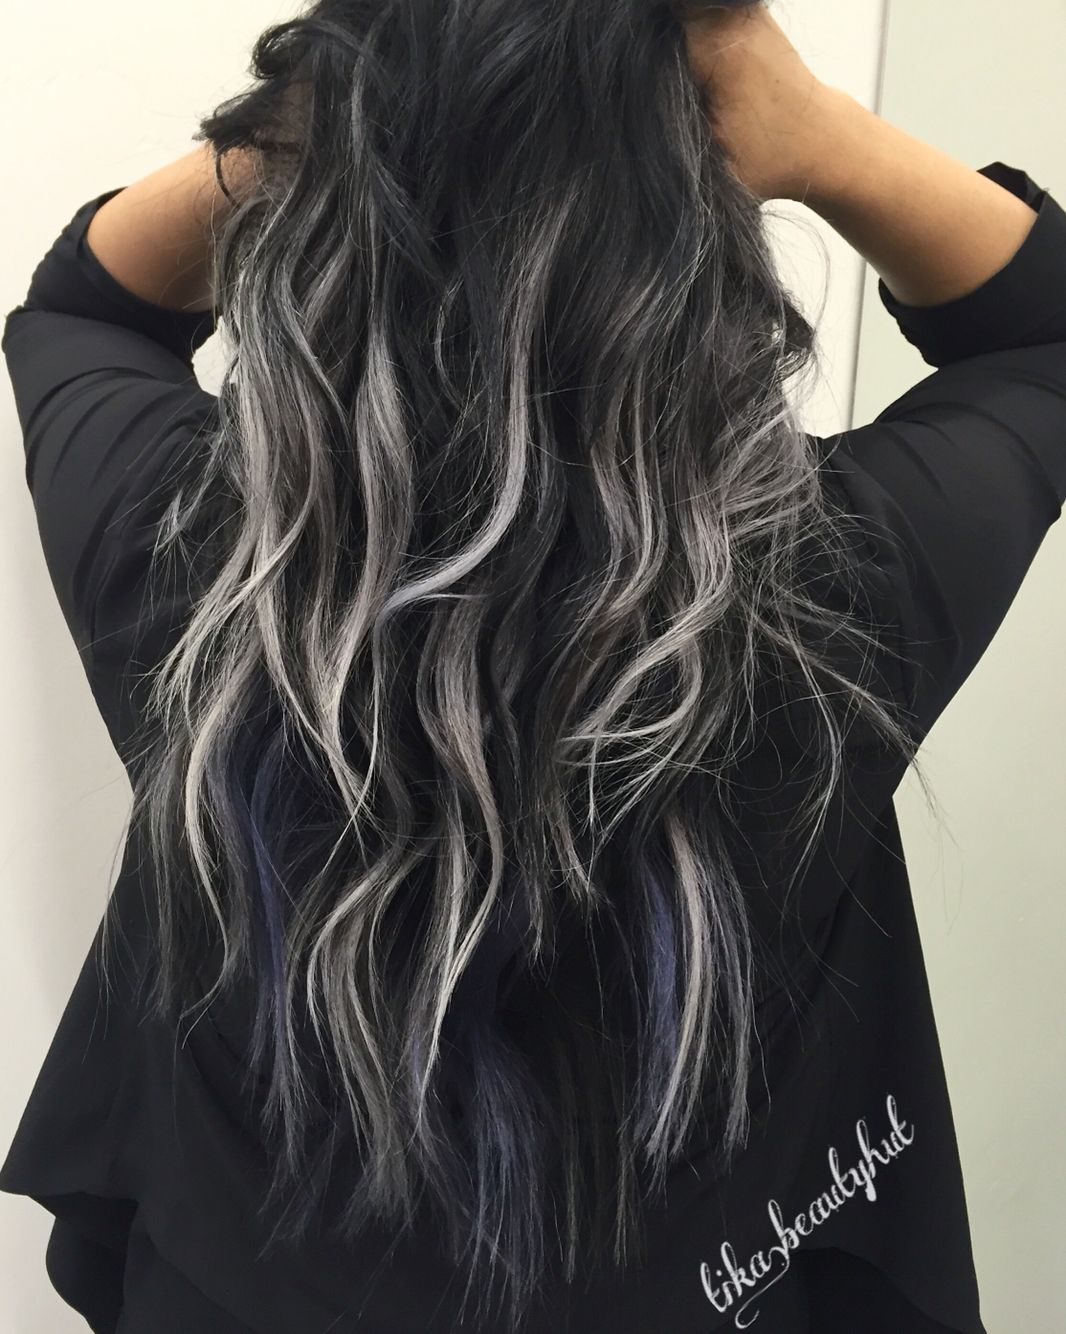 Black Silver Balayage Curly Hair More With Images Hair Styles Hair Color Balayage